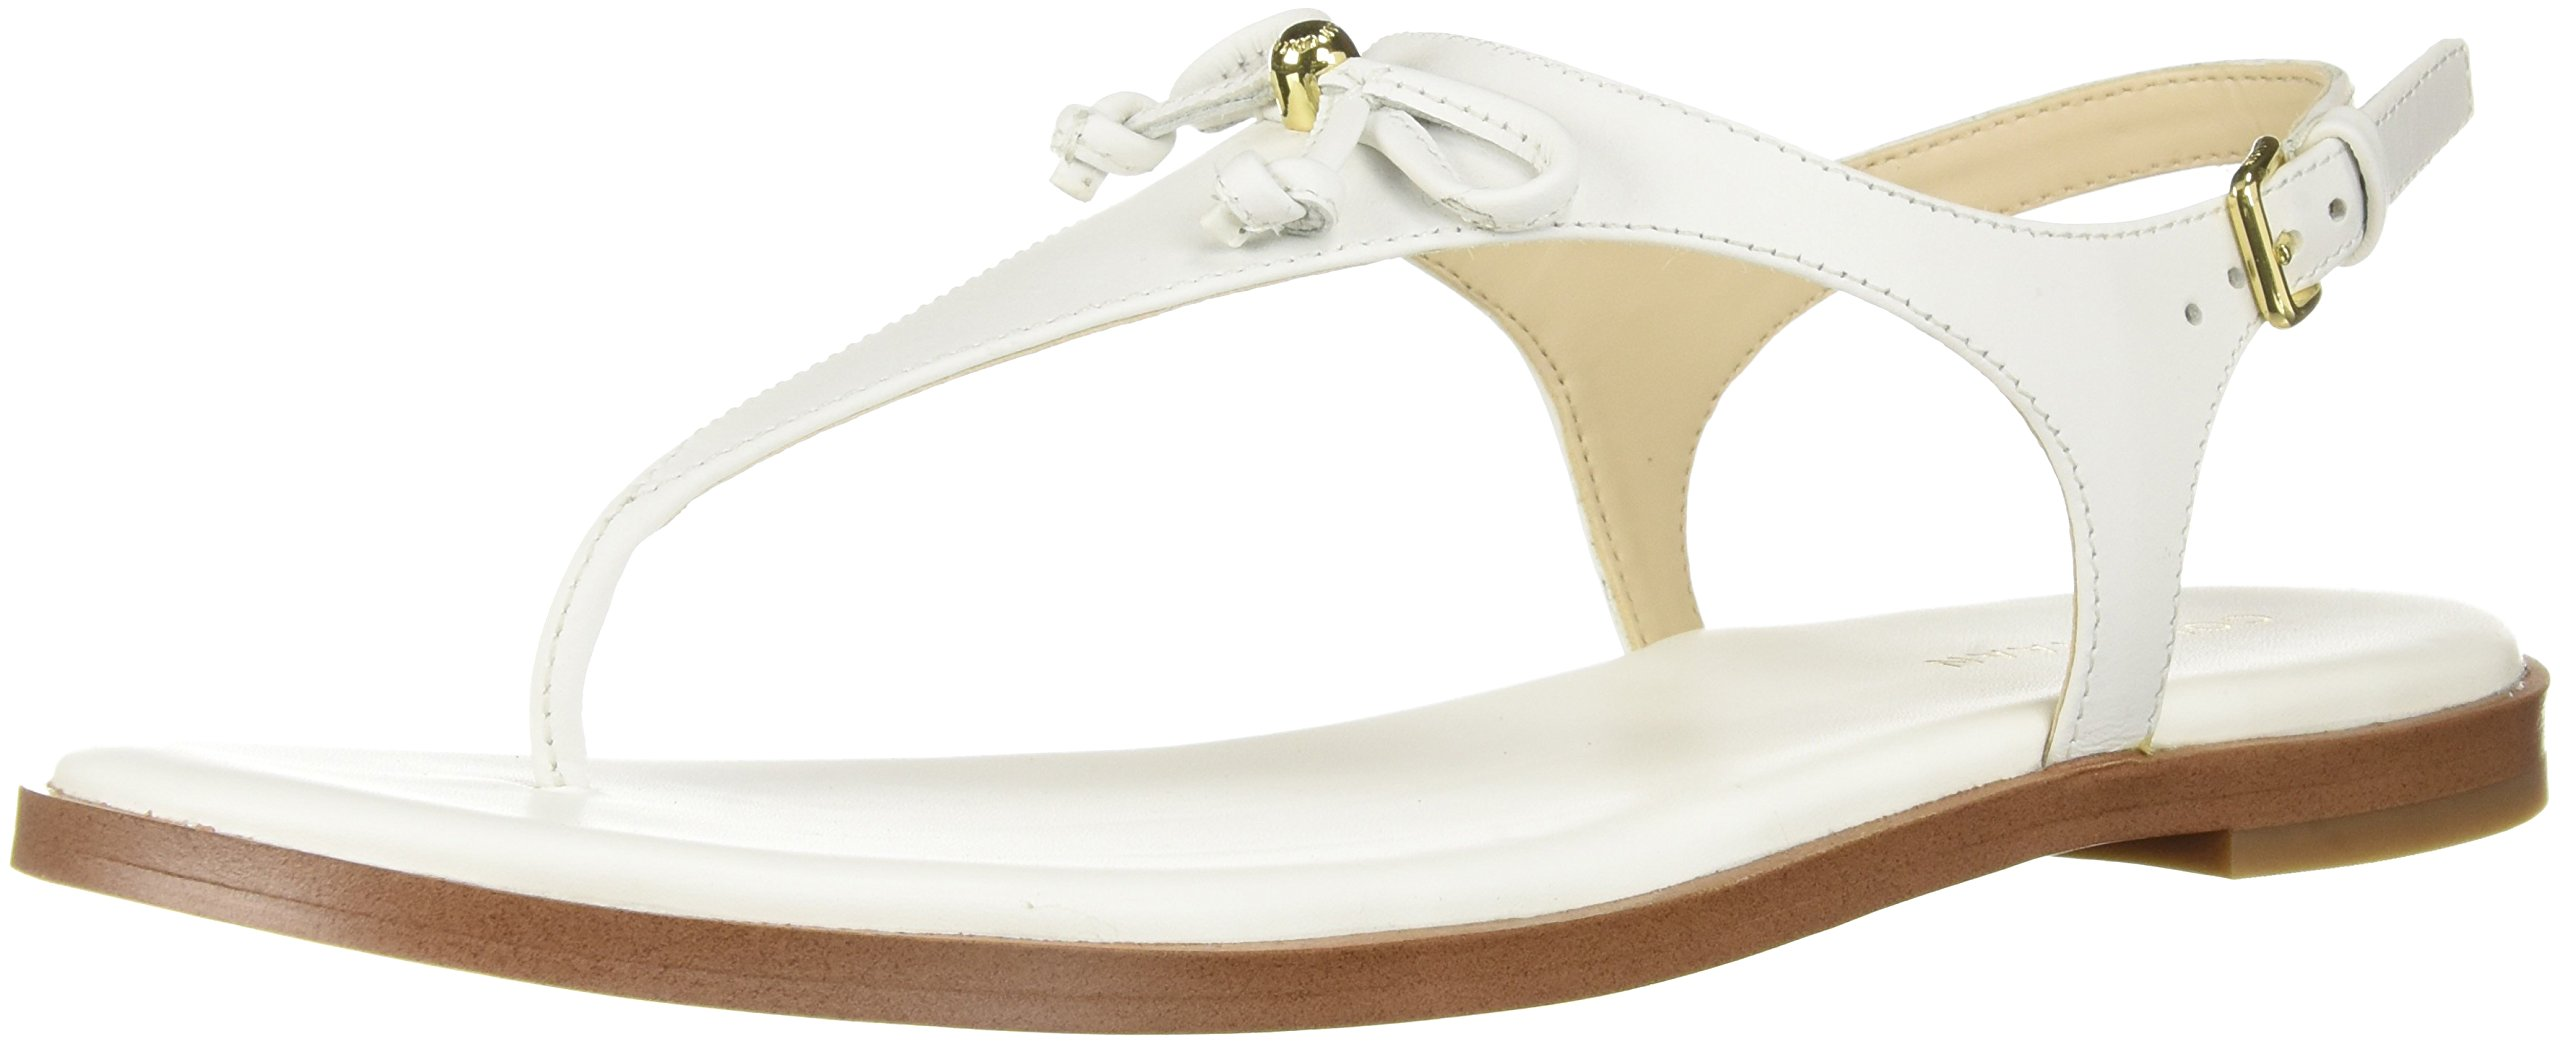 0b6782ee5ecb Galleon - Cole Haan Women s FINDRA Thong Sandal II Flat